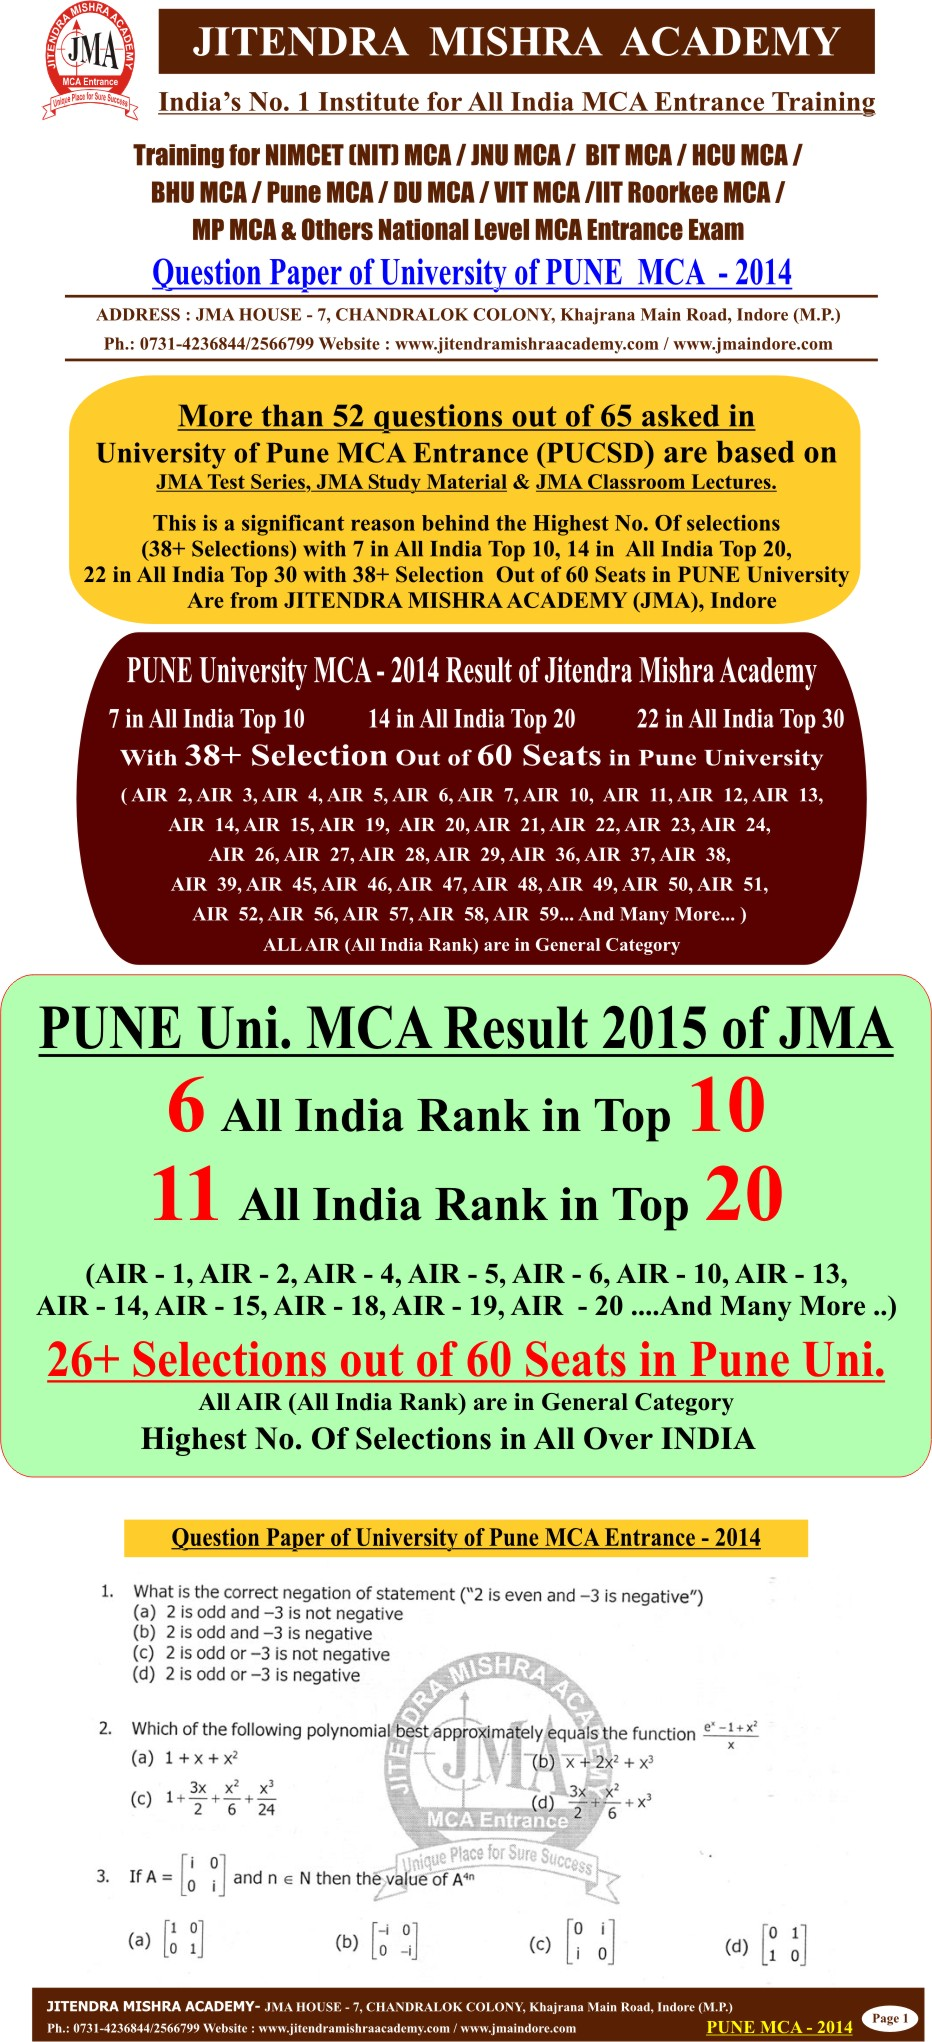 PUNE - 2014 (FINAL)(FIRST PAGE)